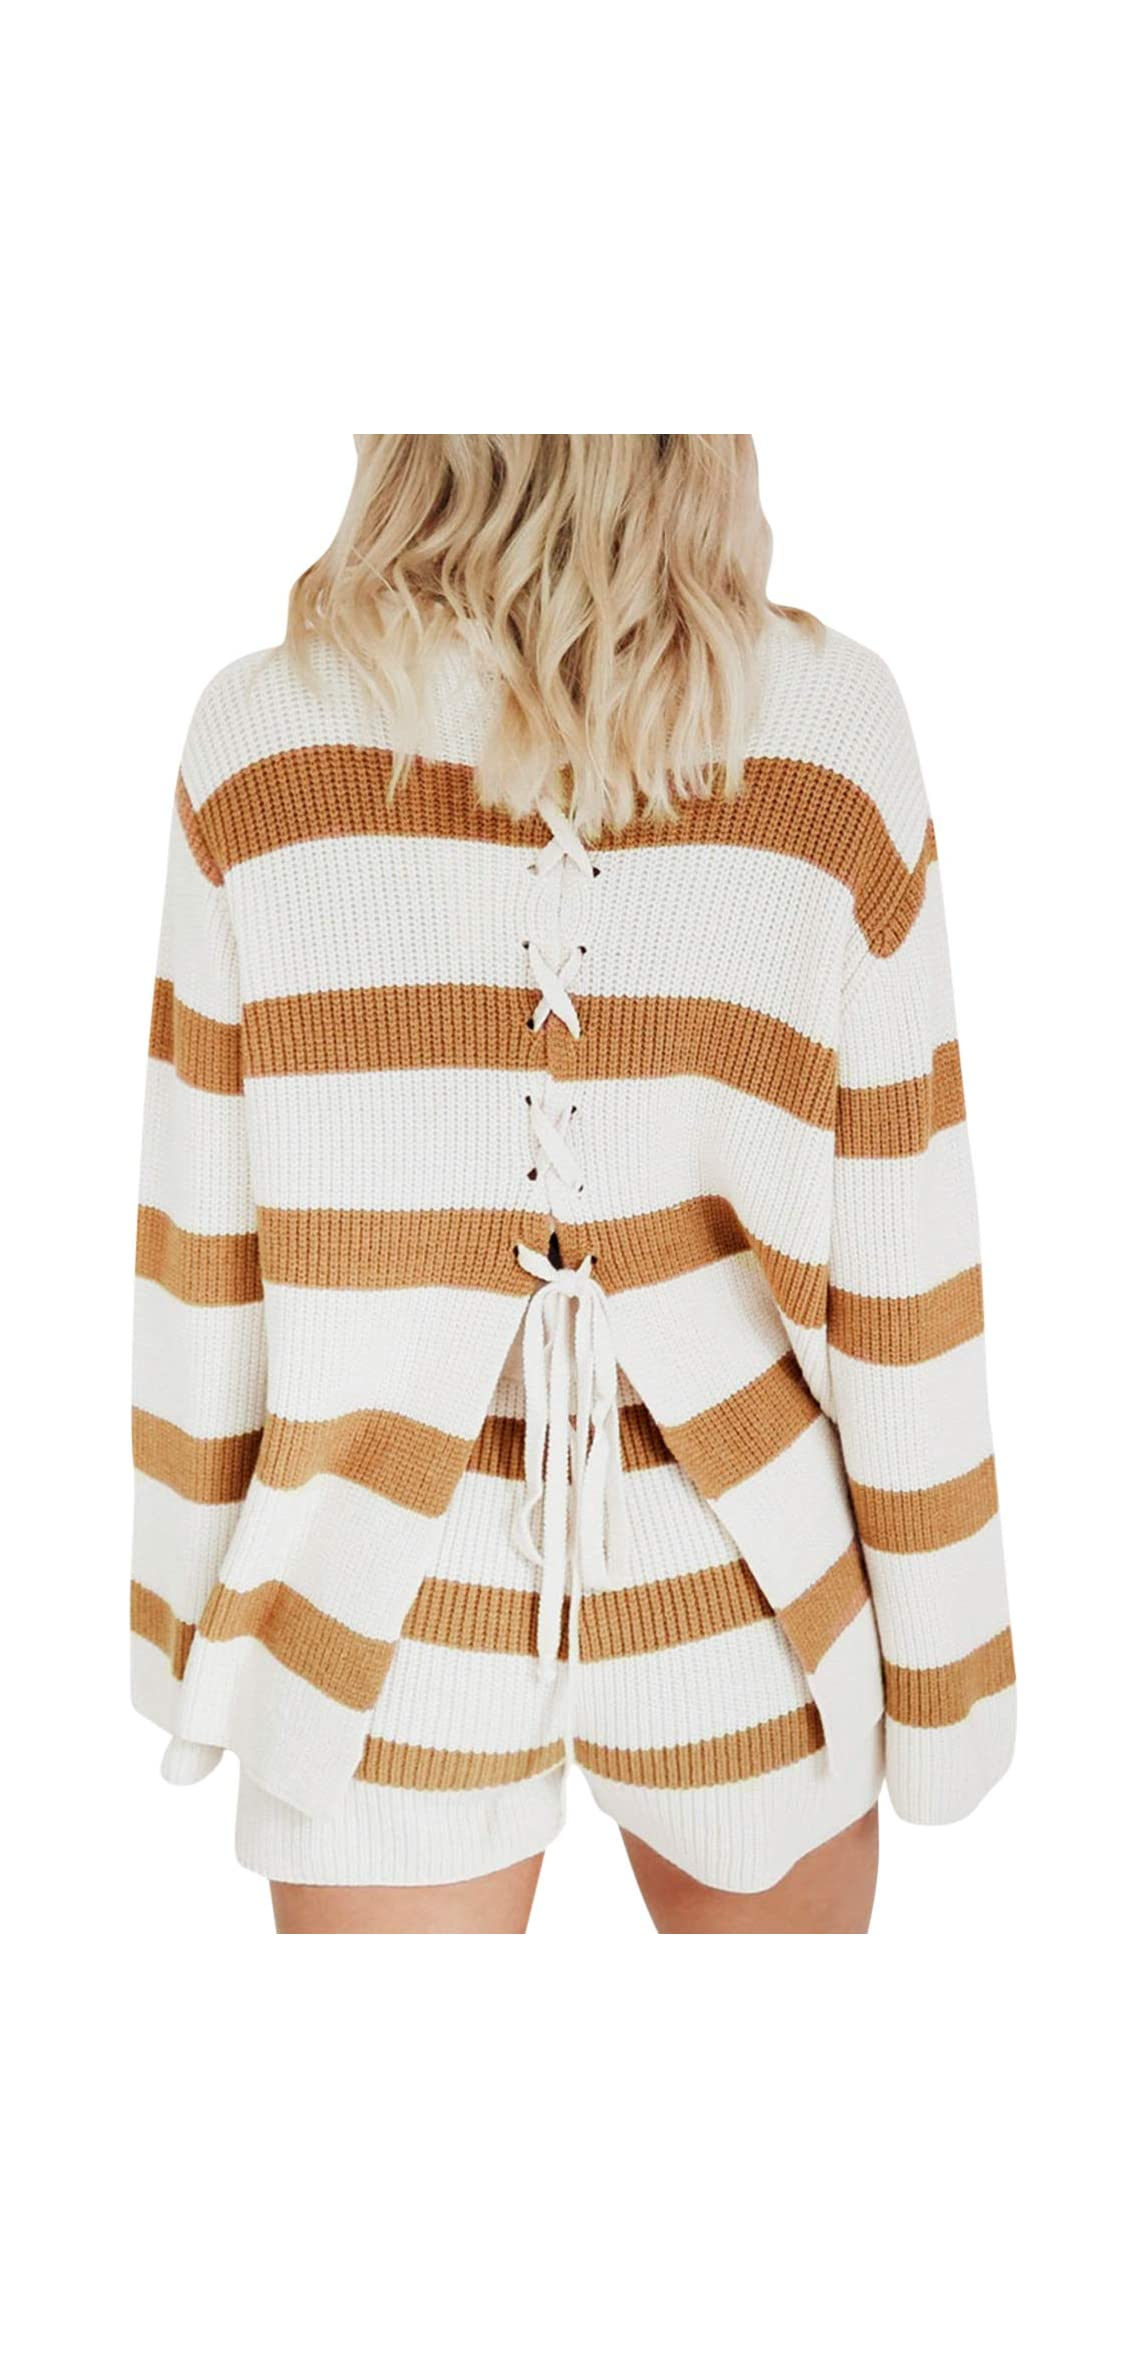 Women's Casual Lace Up Backless Pullover Sweater